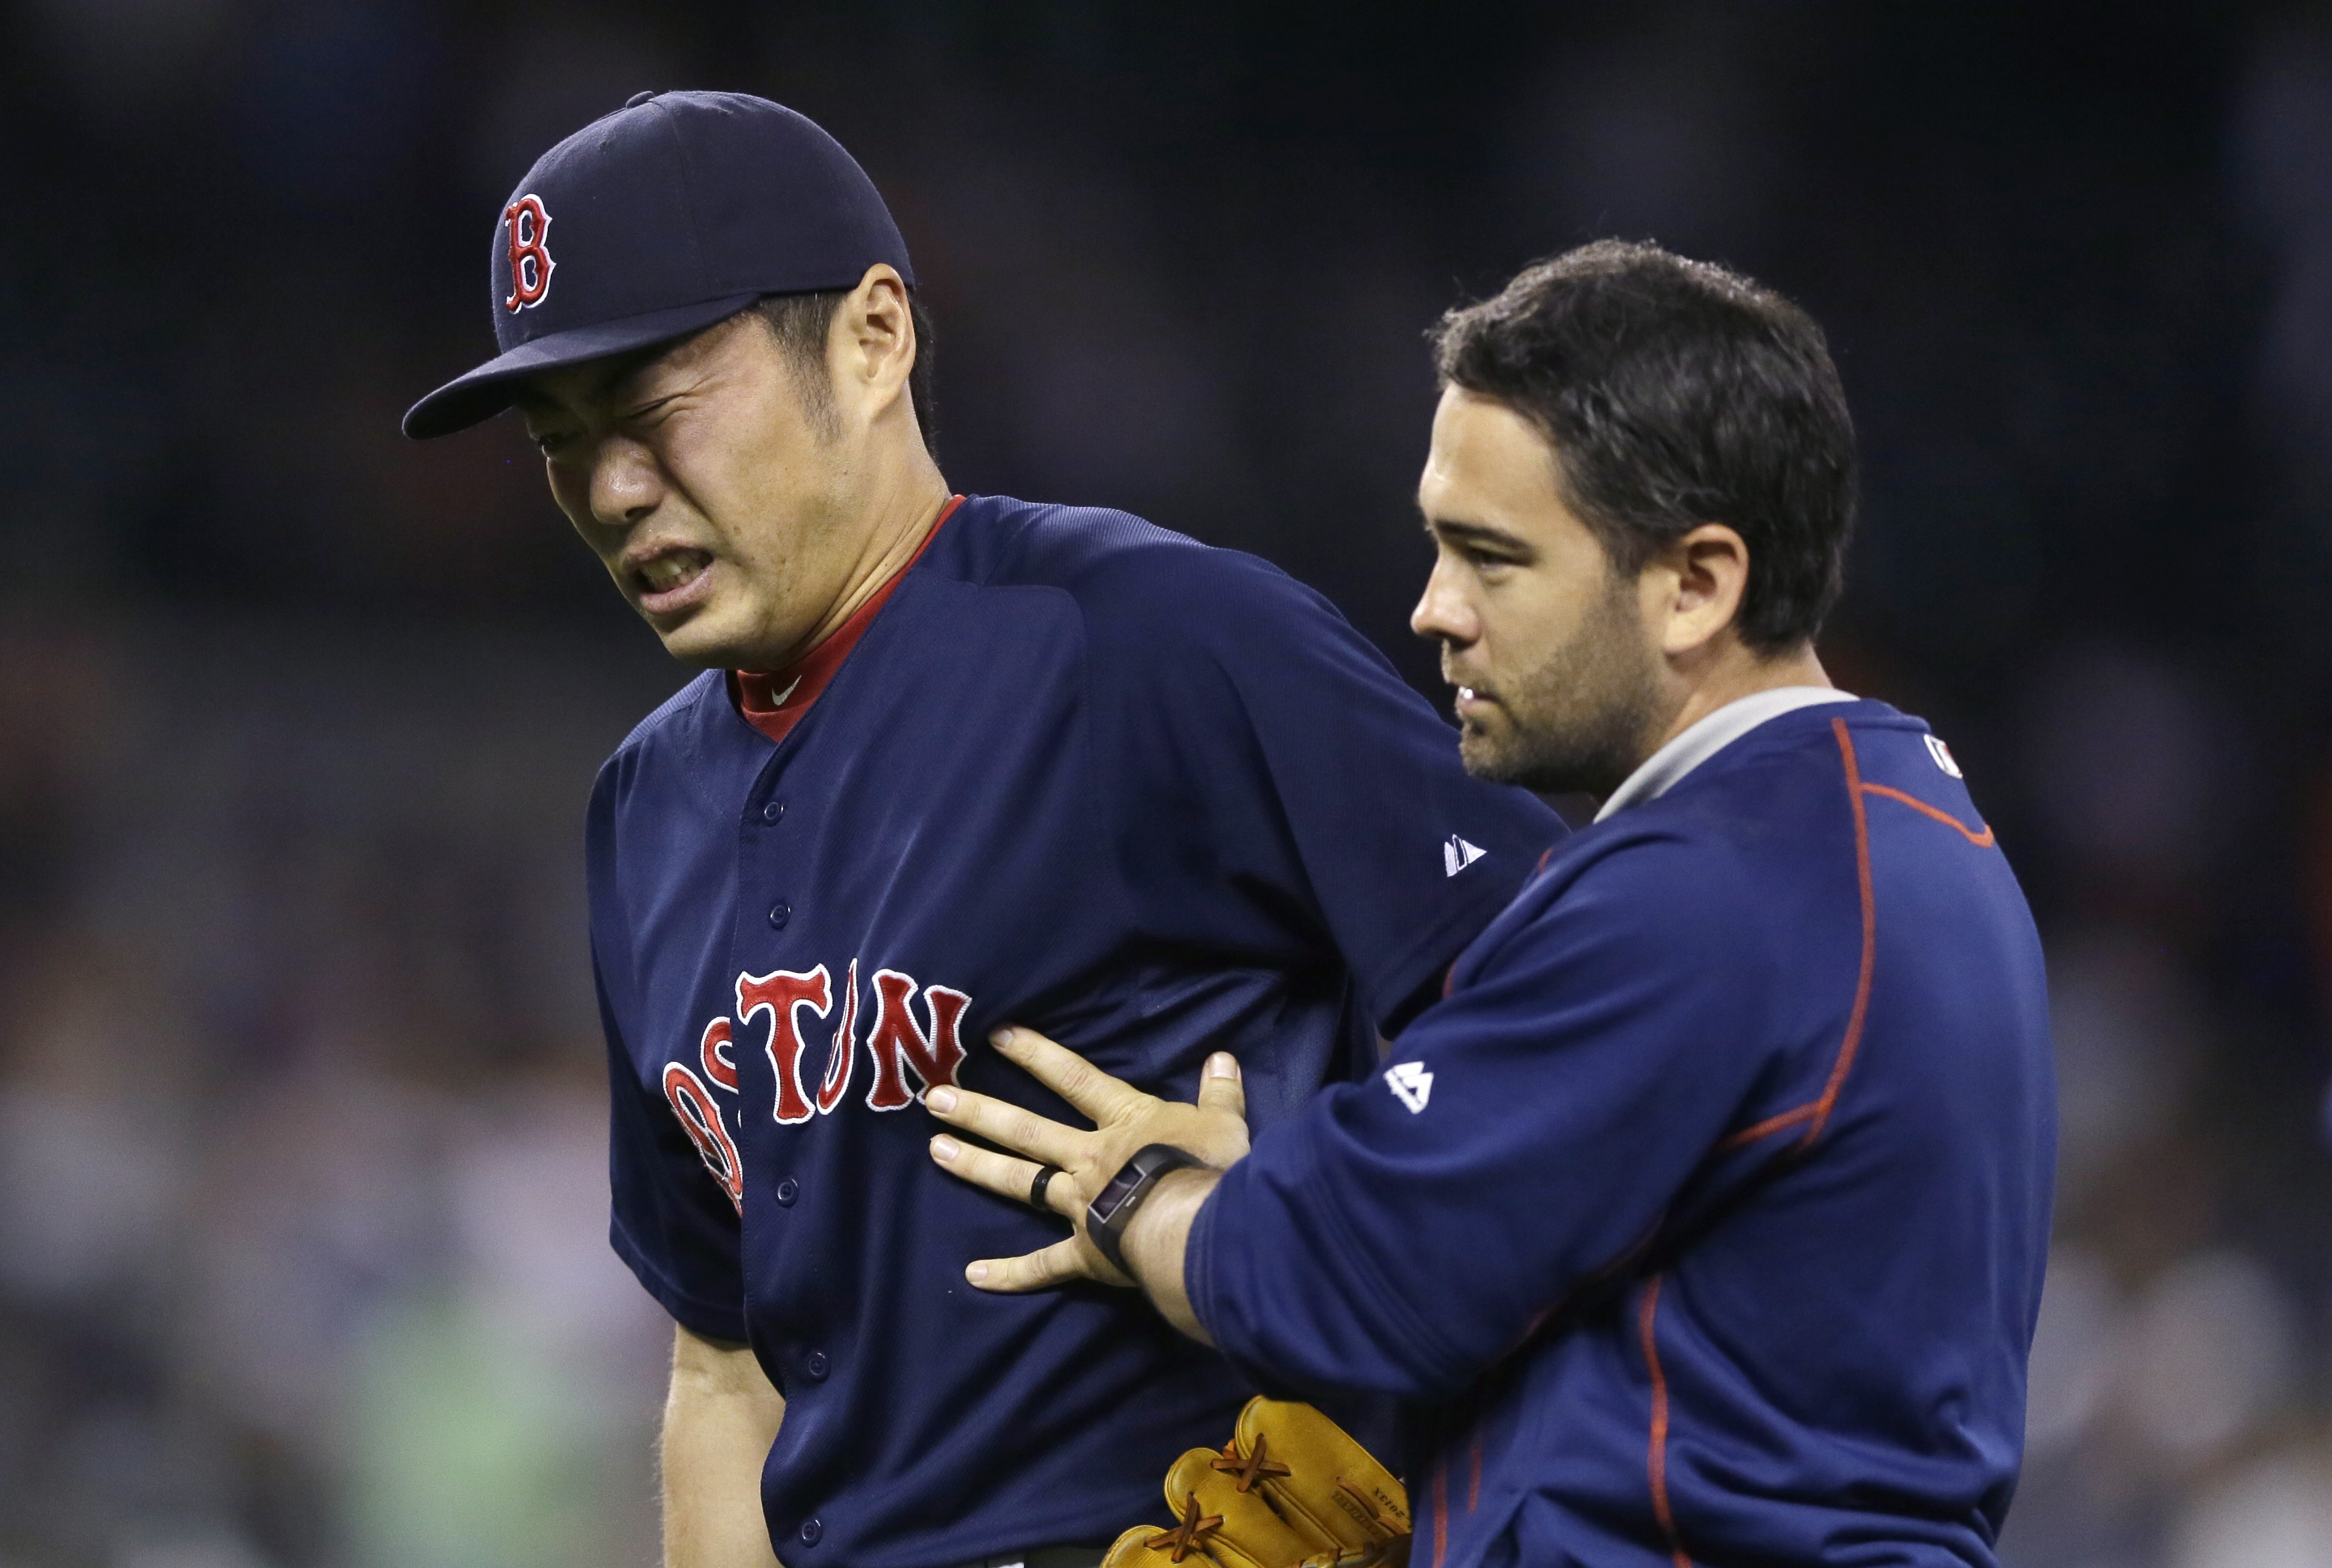 Boston Red Sox relief pitcher Koji Uehara is helped off the field after a baseball game against the Detroit Tigers, Friday, Aug. 7, 2015, in Detroit. Uehara was hit on a grounder by Tigers' Ian Kinsler. The Red Sox defeated the Tigers 7-2. (AP Photo/Carlo